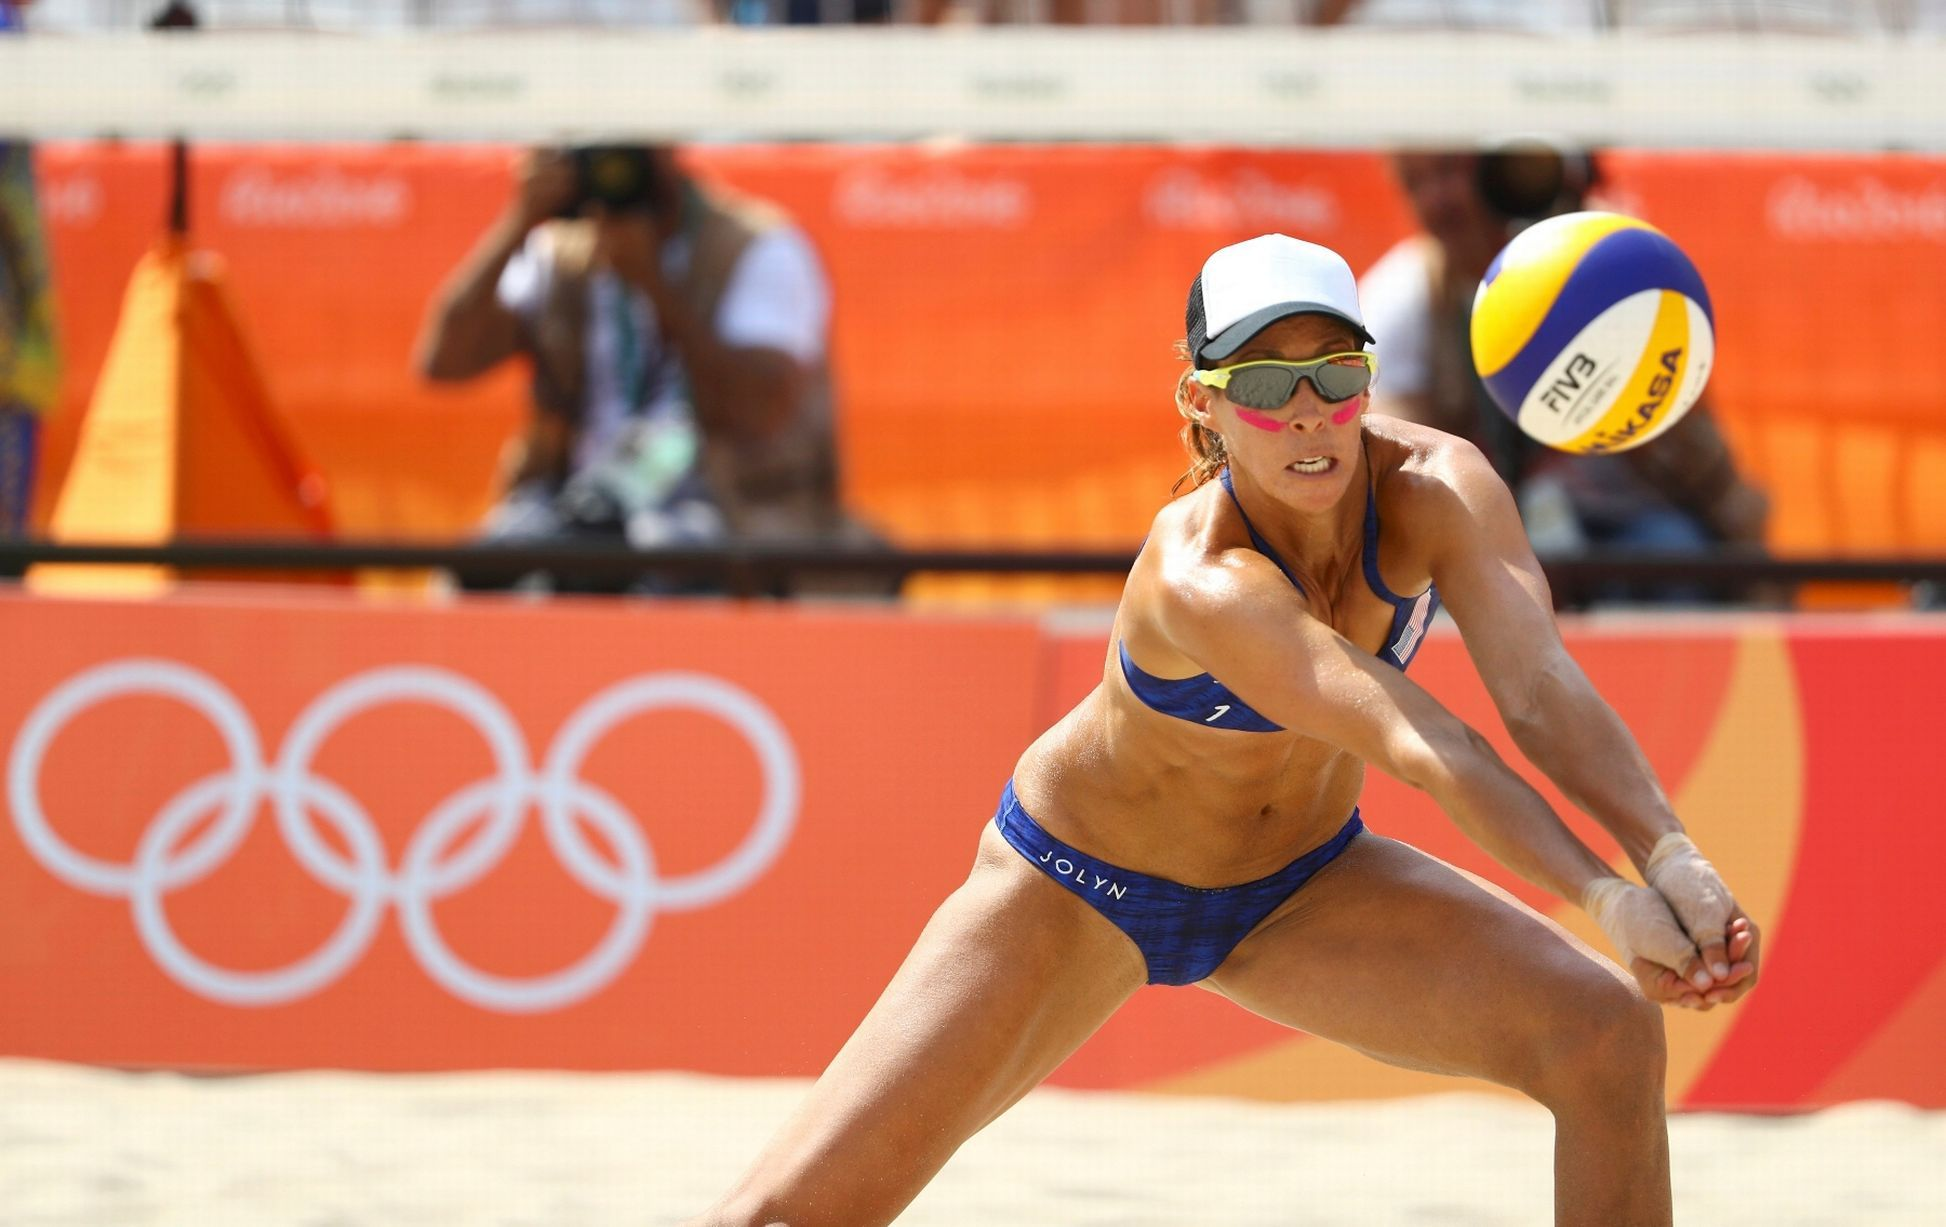 Is This The Best Dressed Female Volleyball Player At The Rio Olympics Olympic Volleyball Rio Olympics 2016 Female Volleyball Players